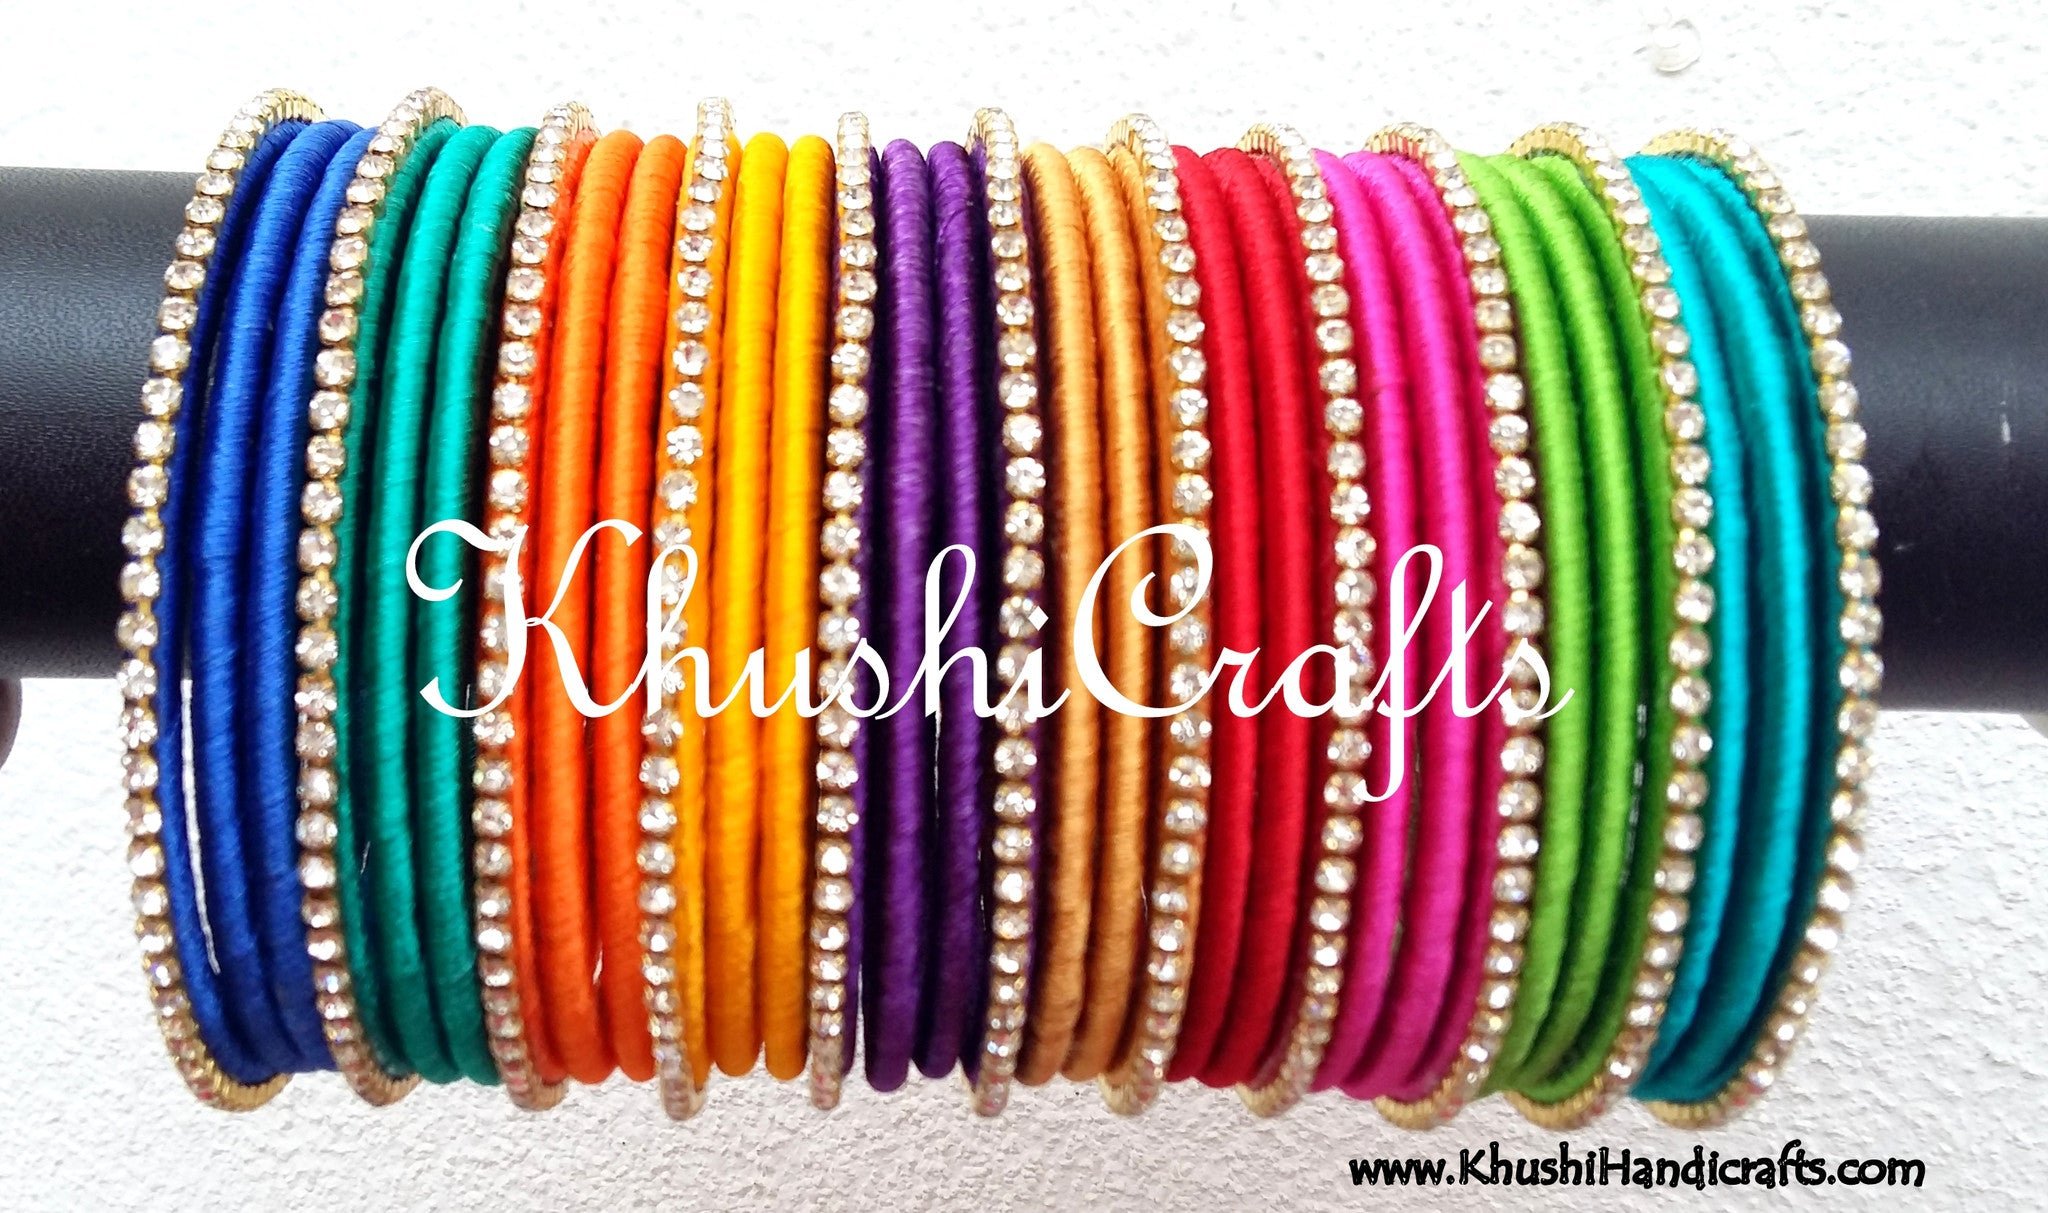 flowers thick products img edit vavavida bangles kashmir